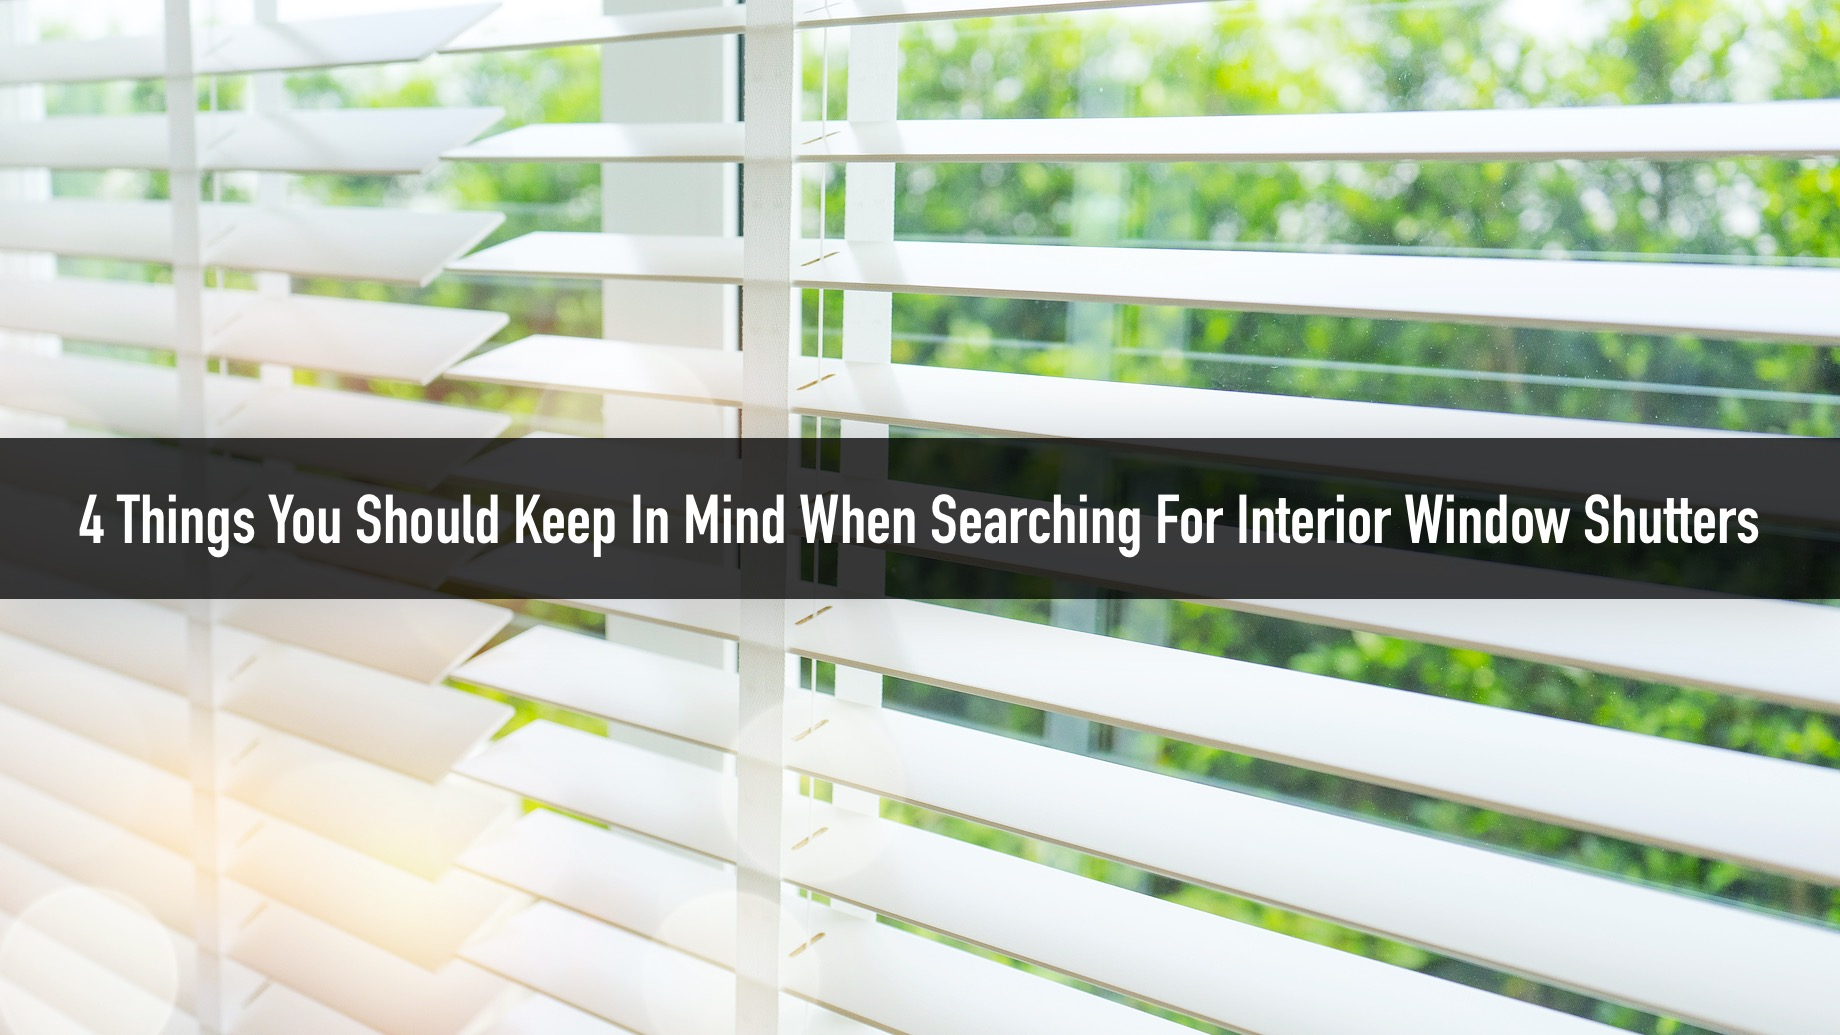 4 Things You Should Keep In Mind When Searching For Interior Window Shutters